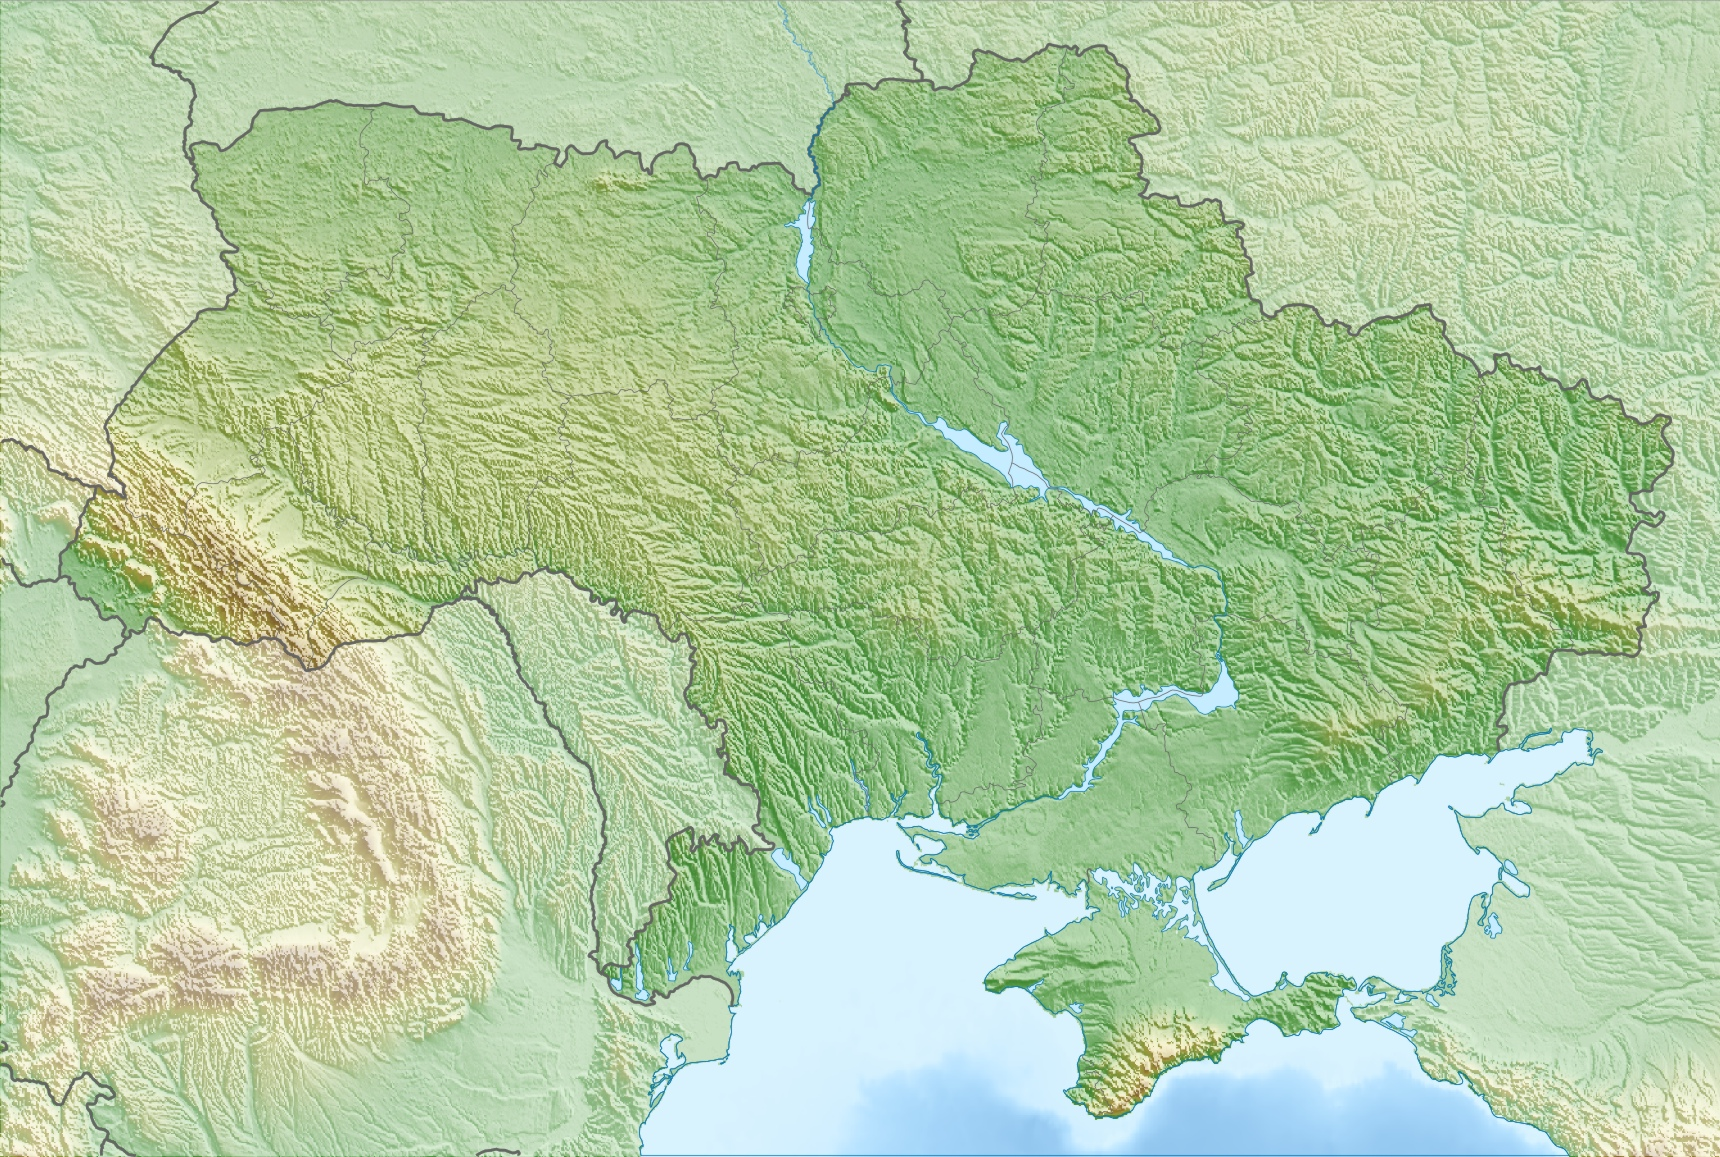 File:Ukraine relief location map.jpg - Wikimedia Commons